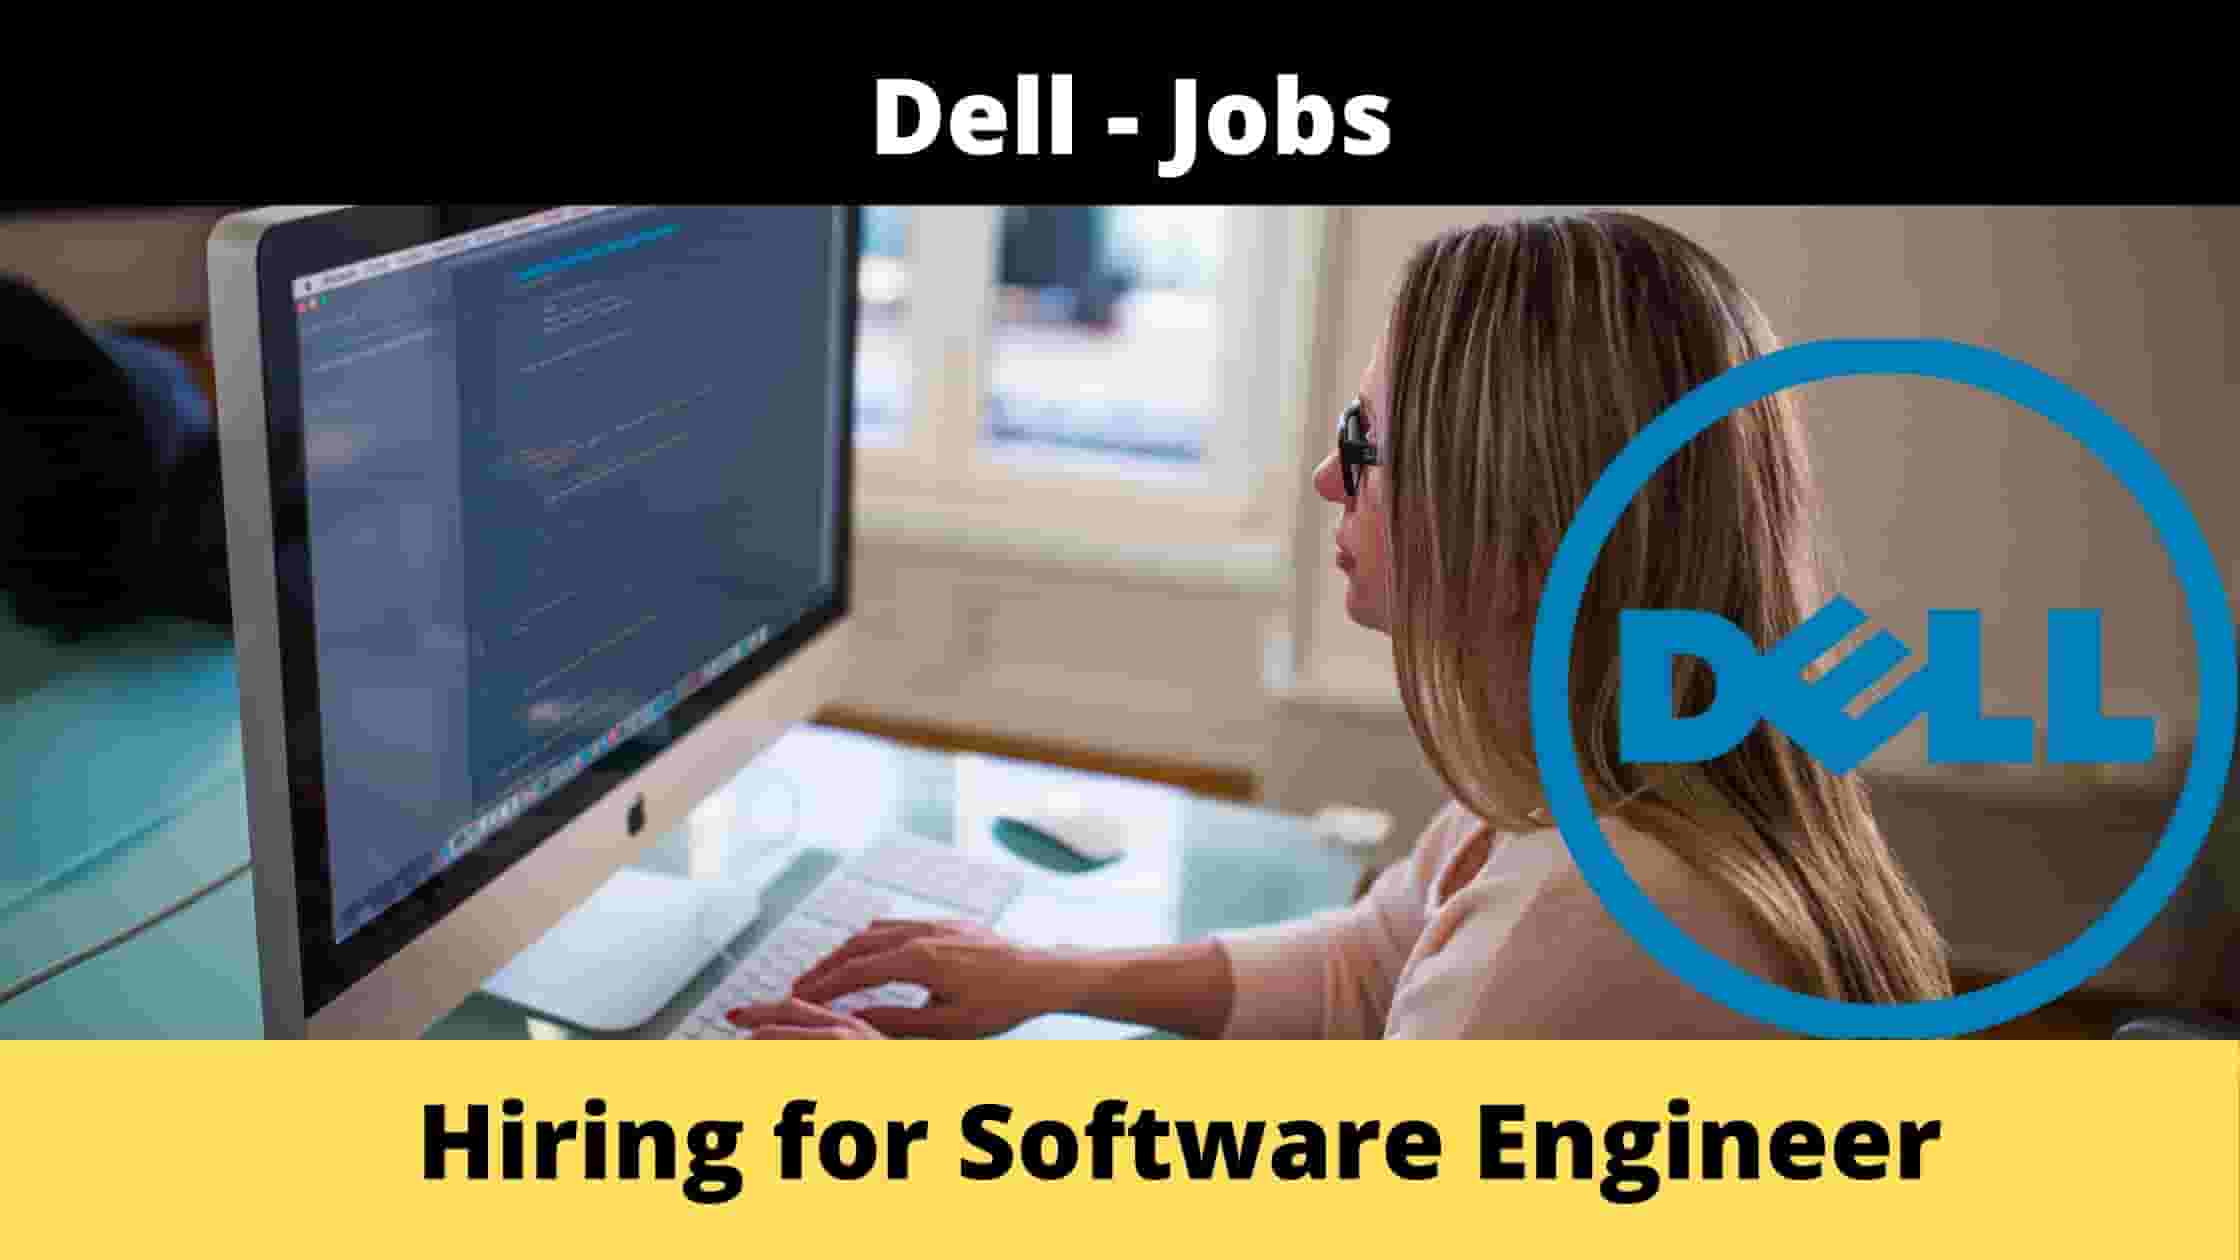 Dell is hiring Software Engineers, [Apply Now]